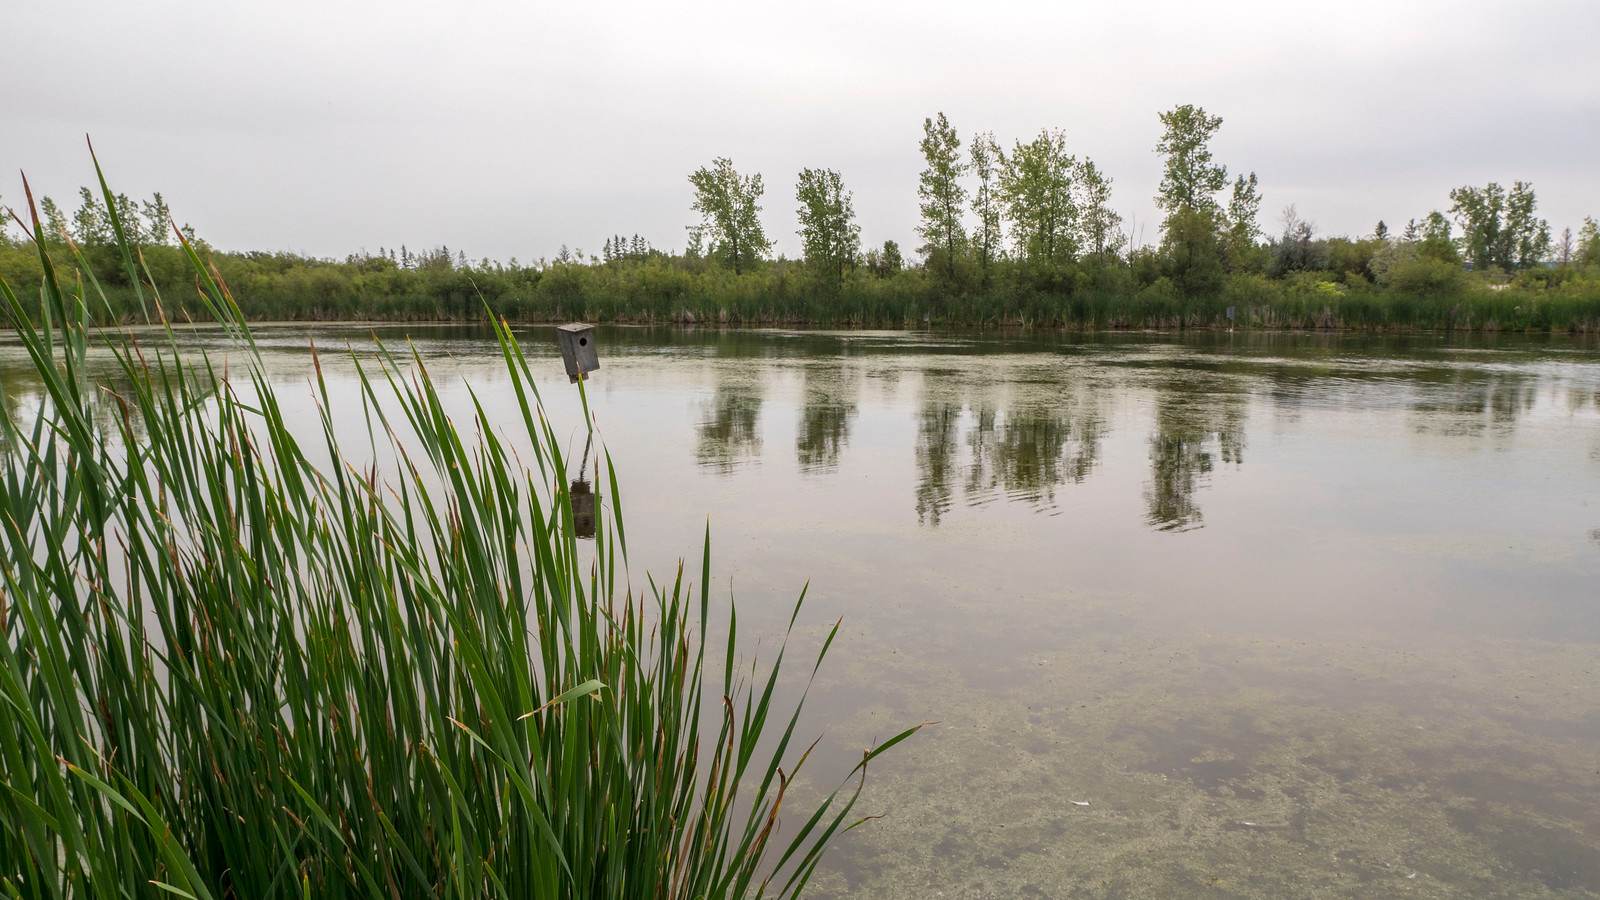 Fortwhyte Alive marsh and swamp land, Winnipeg. Things to Do in Winnipeg: A Couples Getaway Guide